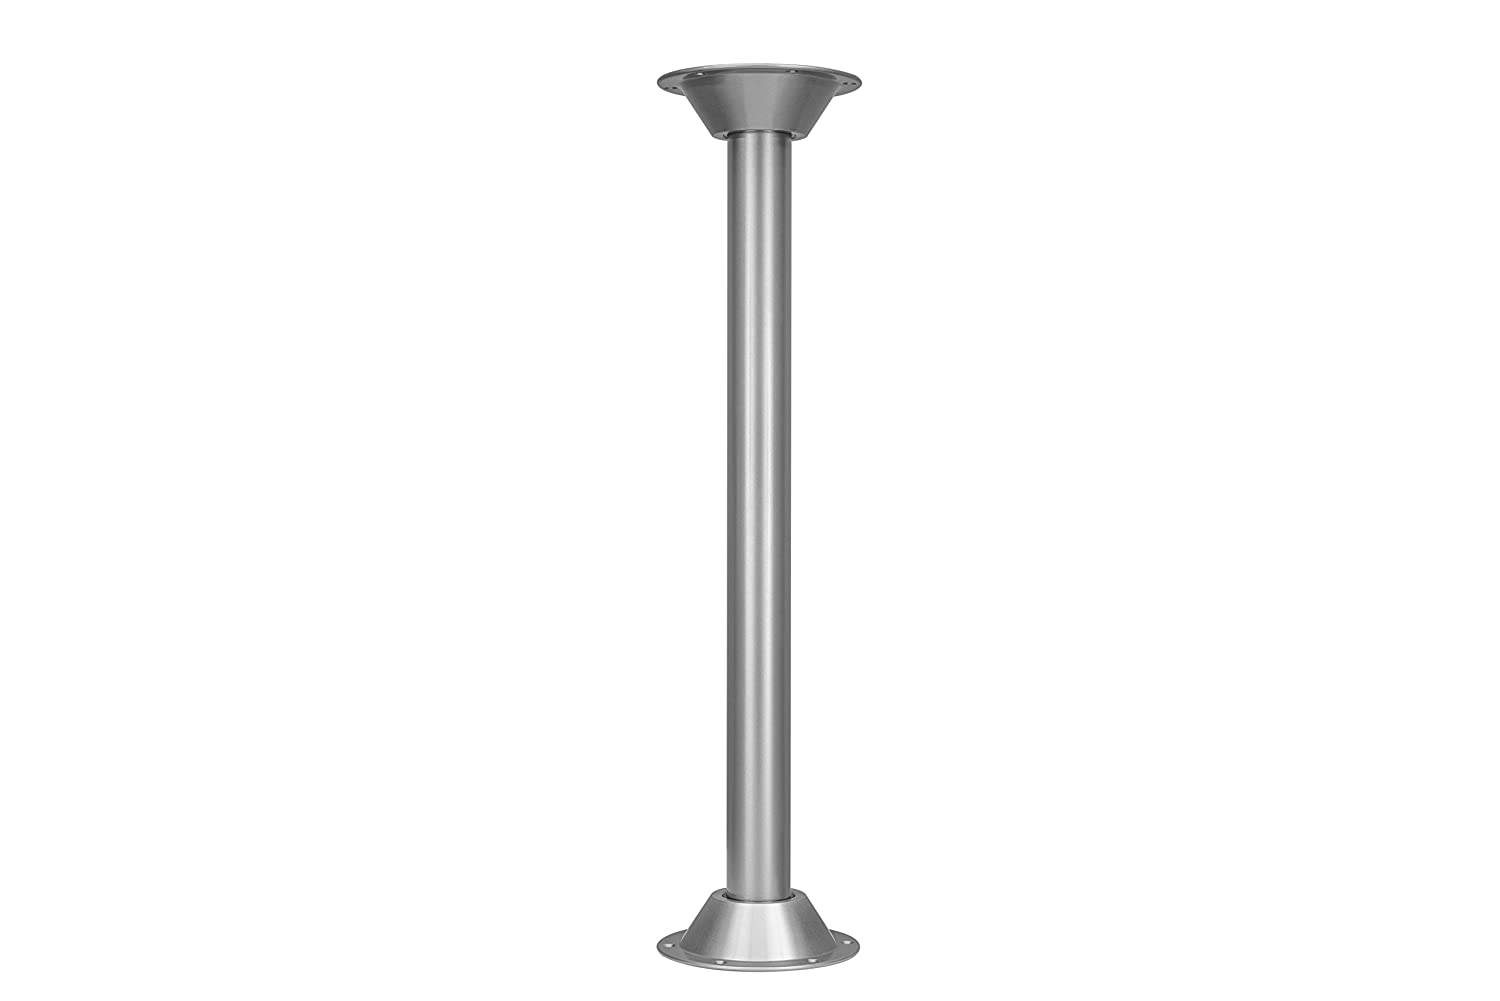 RecPro RV Dinette Booth Table Leg | Premium 27' Dinette Post | Modern Elegant RV Dinette Stand Surface Mount